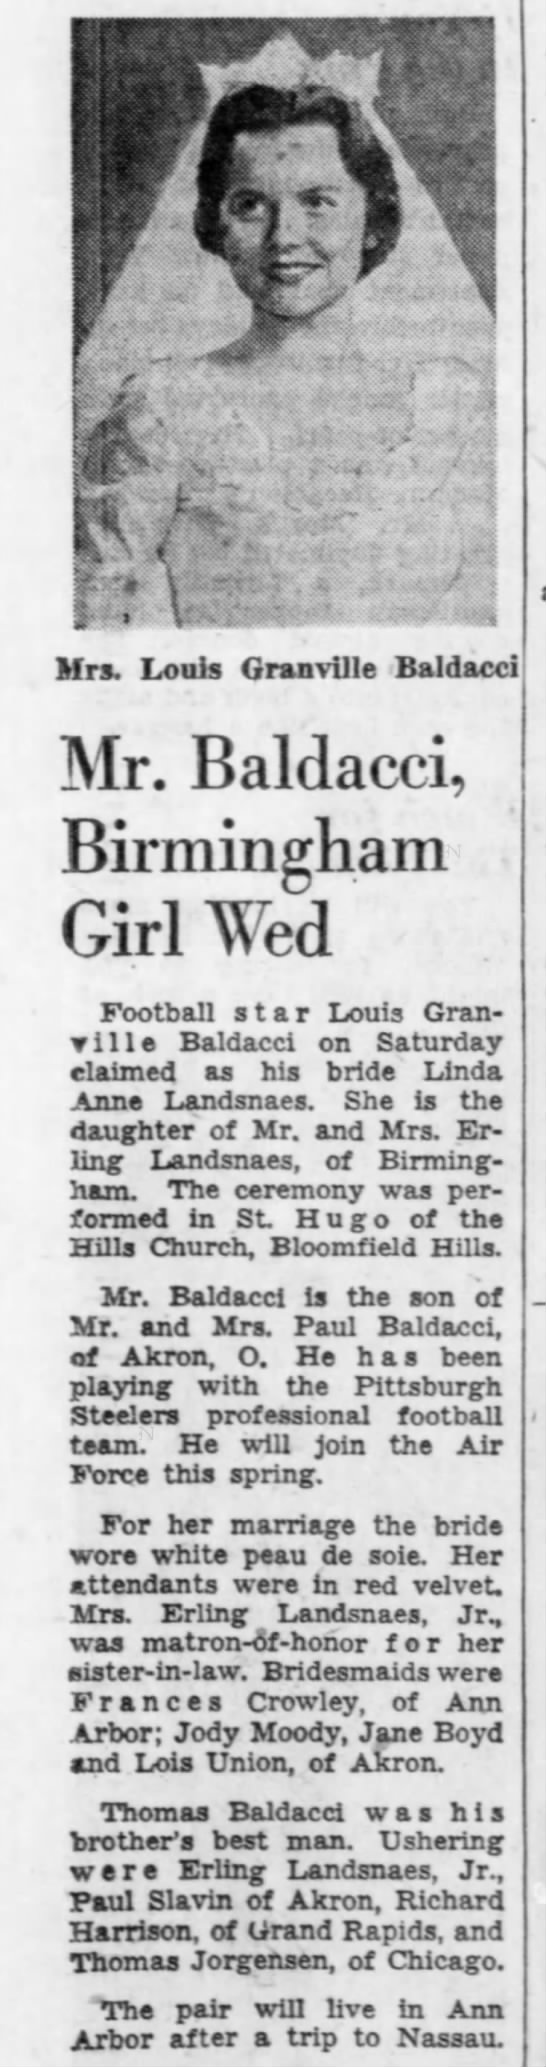 Mr. Baldacci, birmingham Girl Wed -